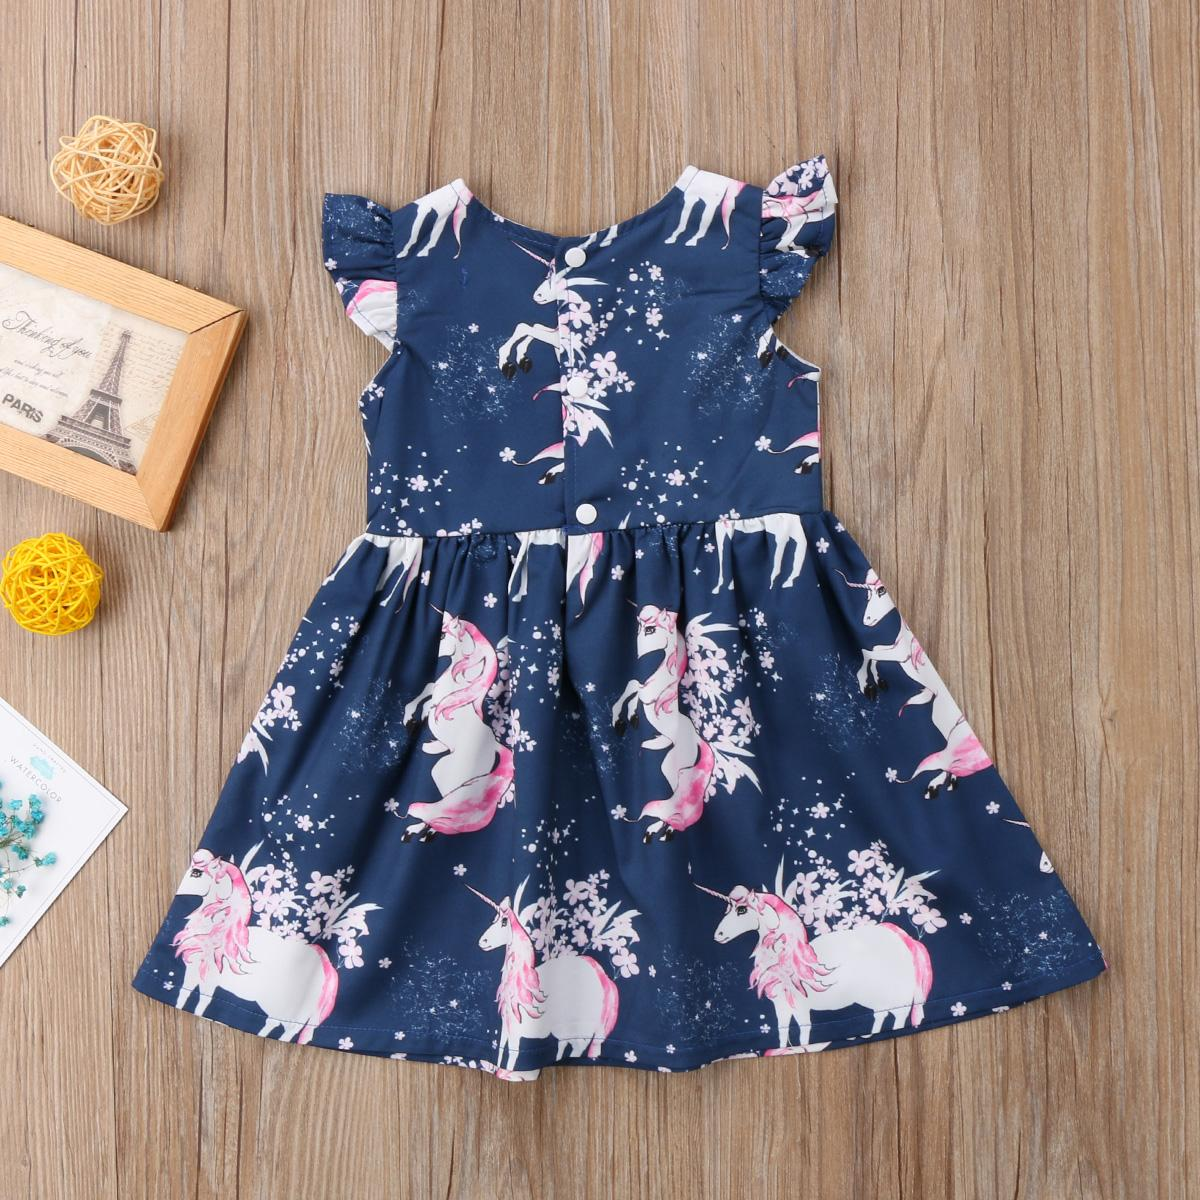 Toddler Baby Girls Dress Round Neck Floral Outfits Unicorn Summer Sleeveless Blue Dresses Girl Clothing Cute Kid 1-6 Years